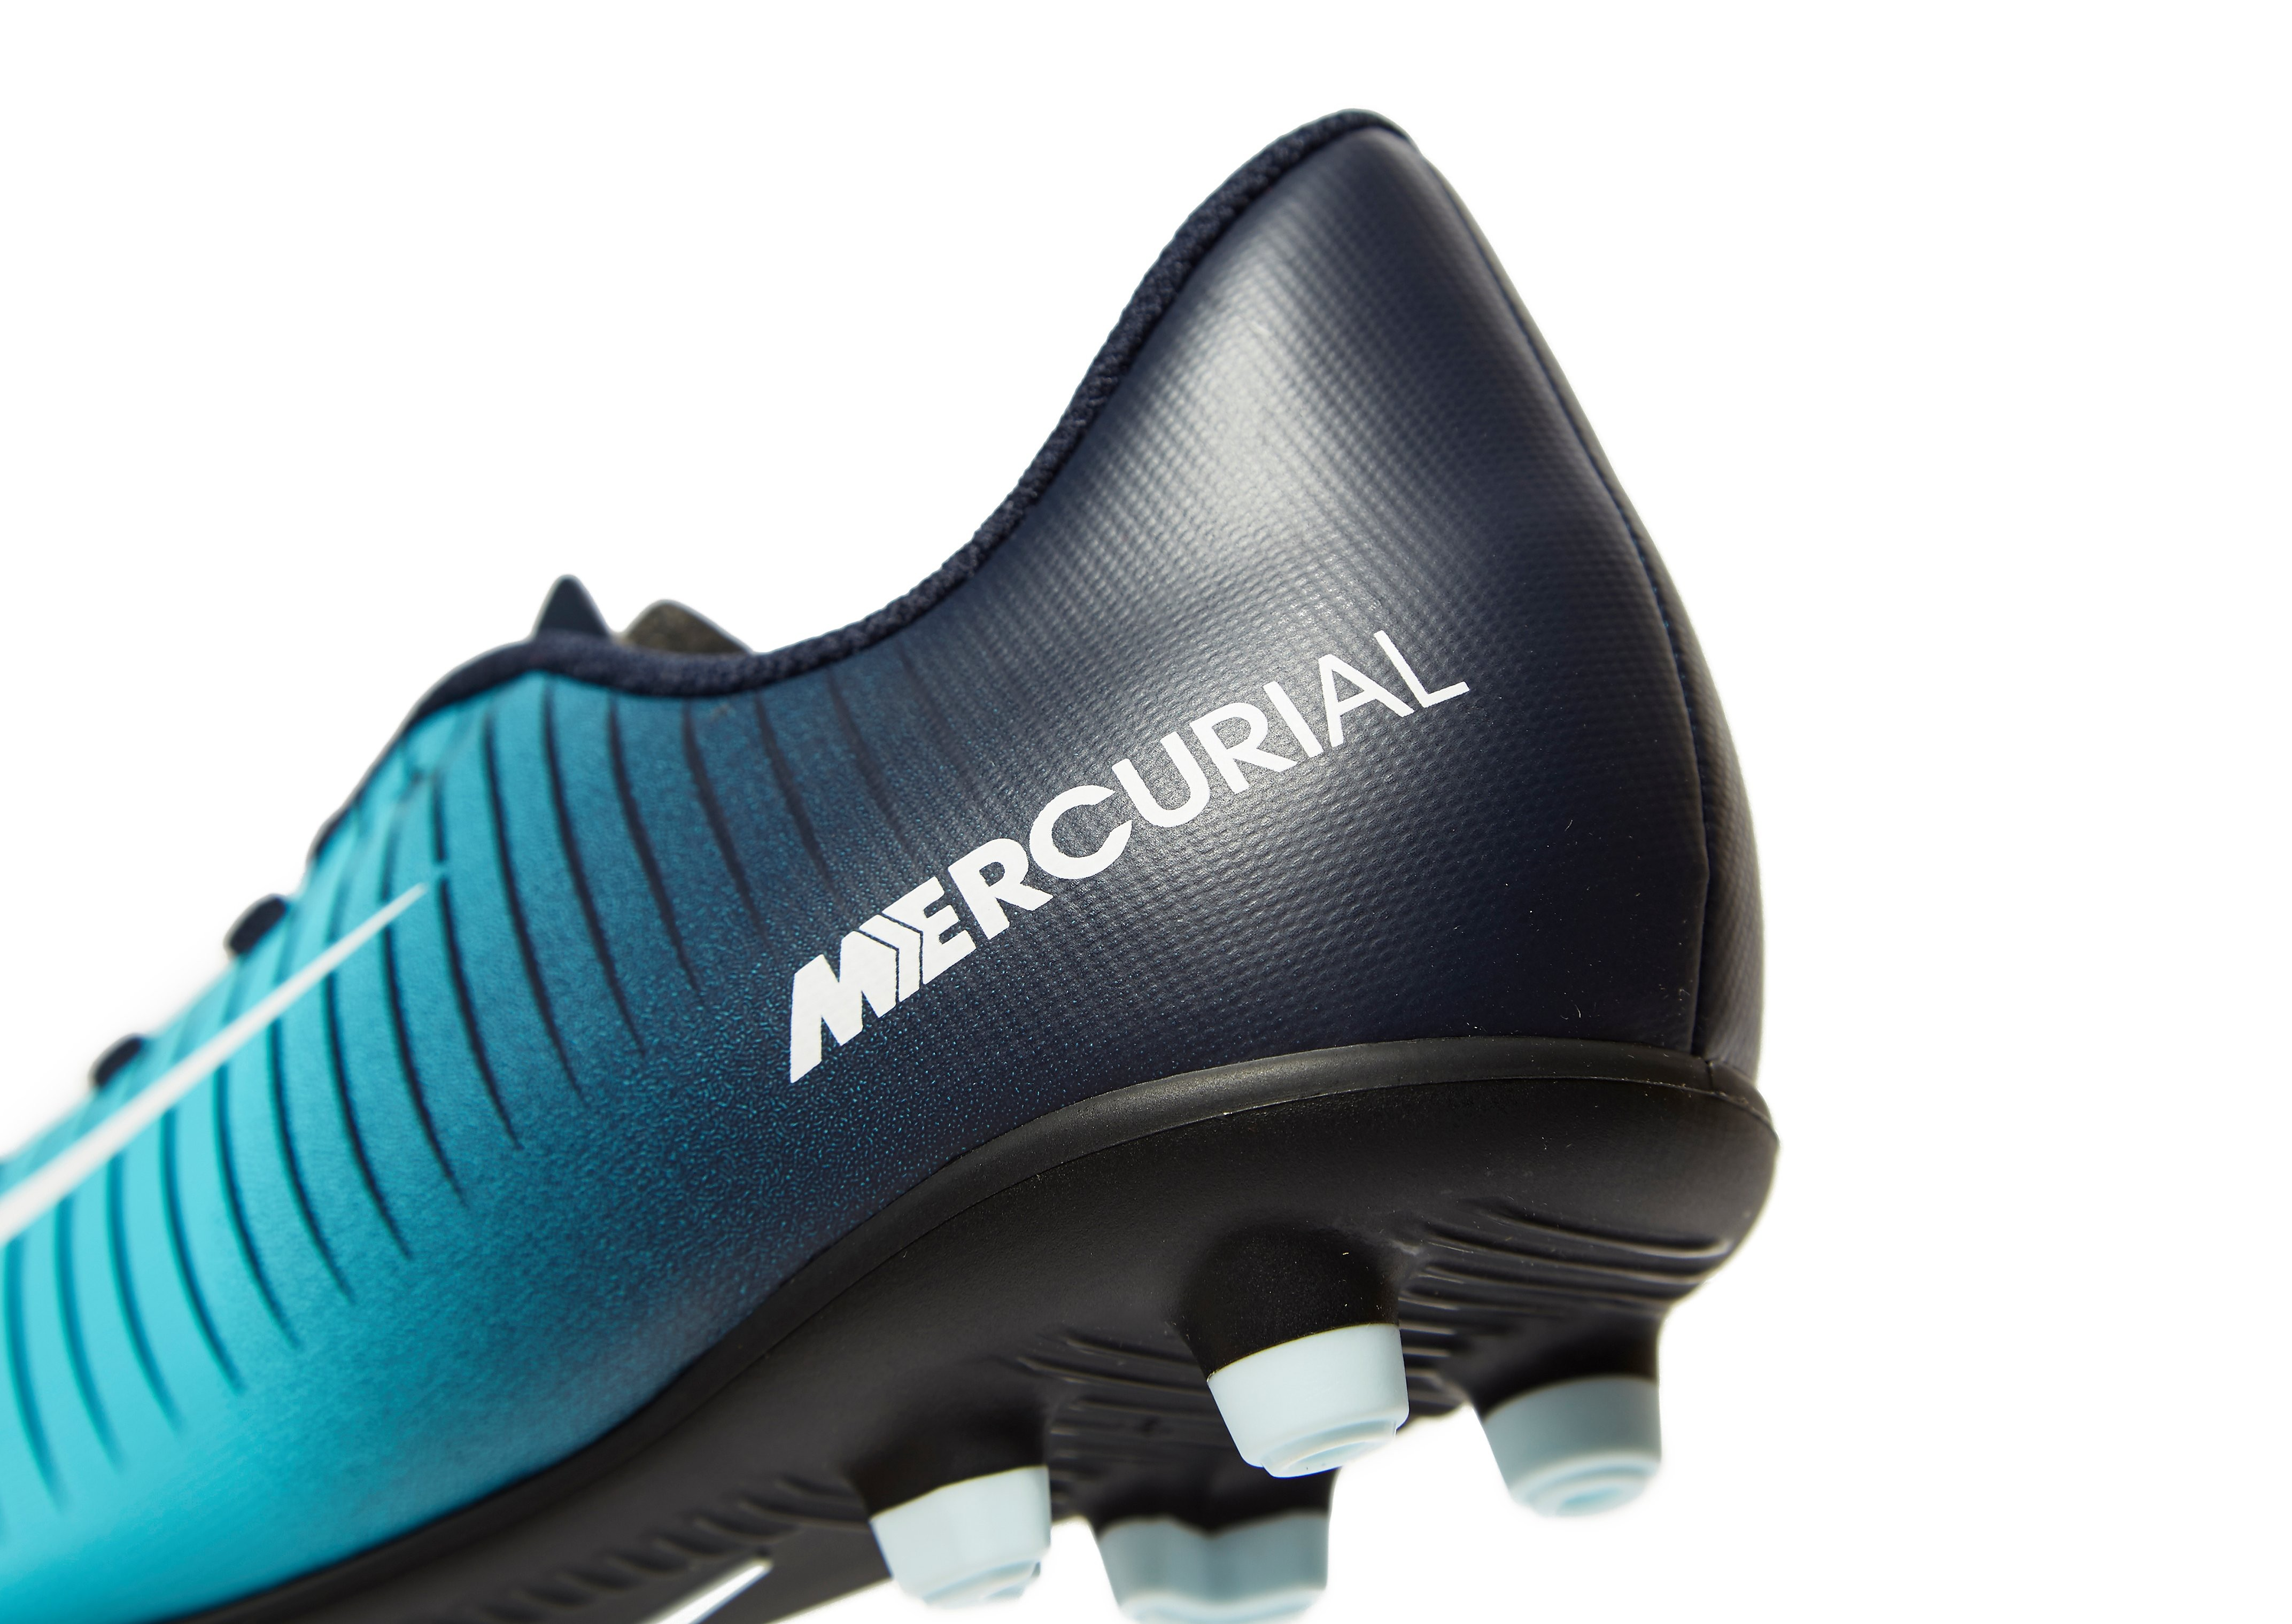 Nike Fire and Ice Mercurial Vortex FG Children